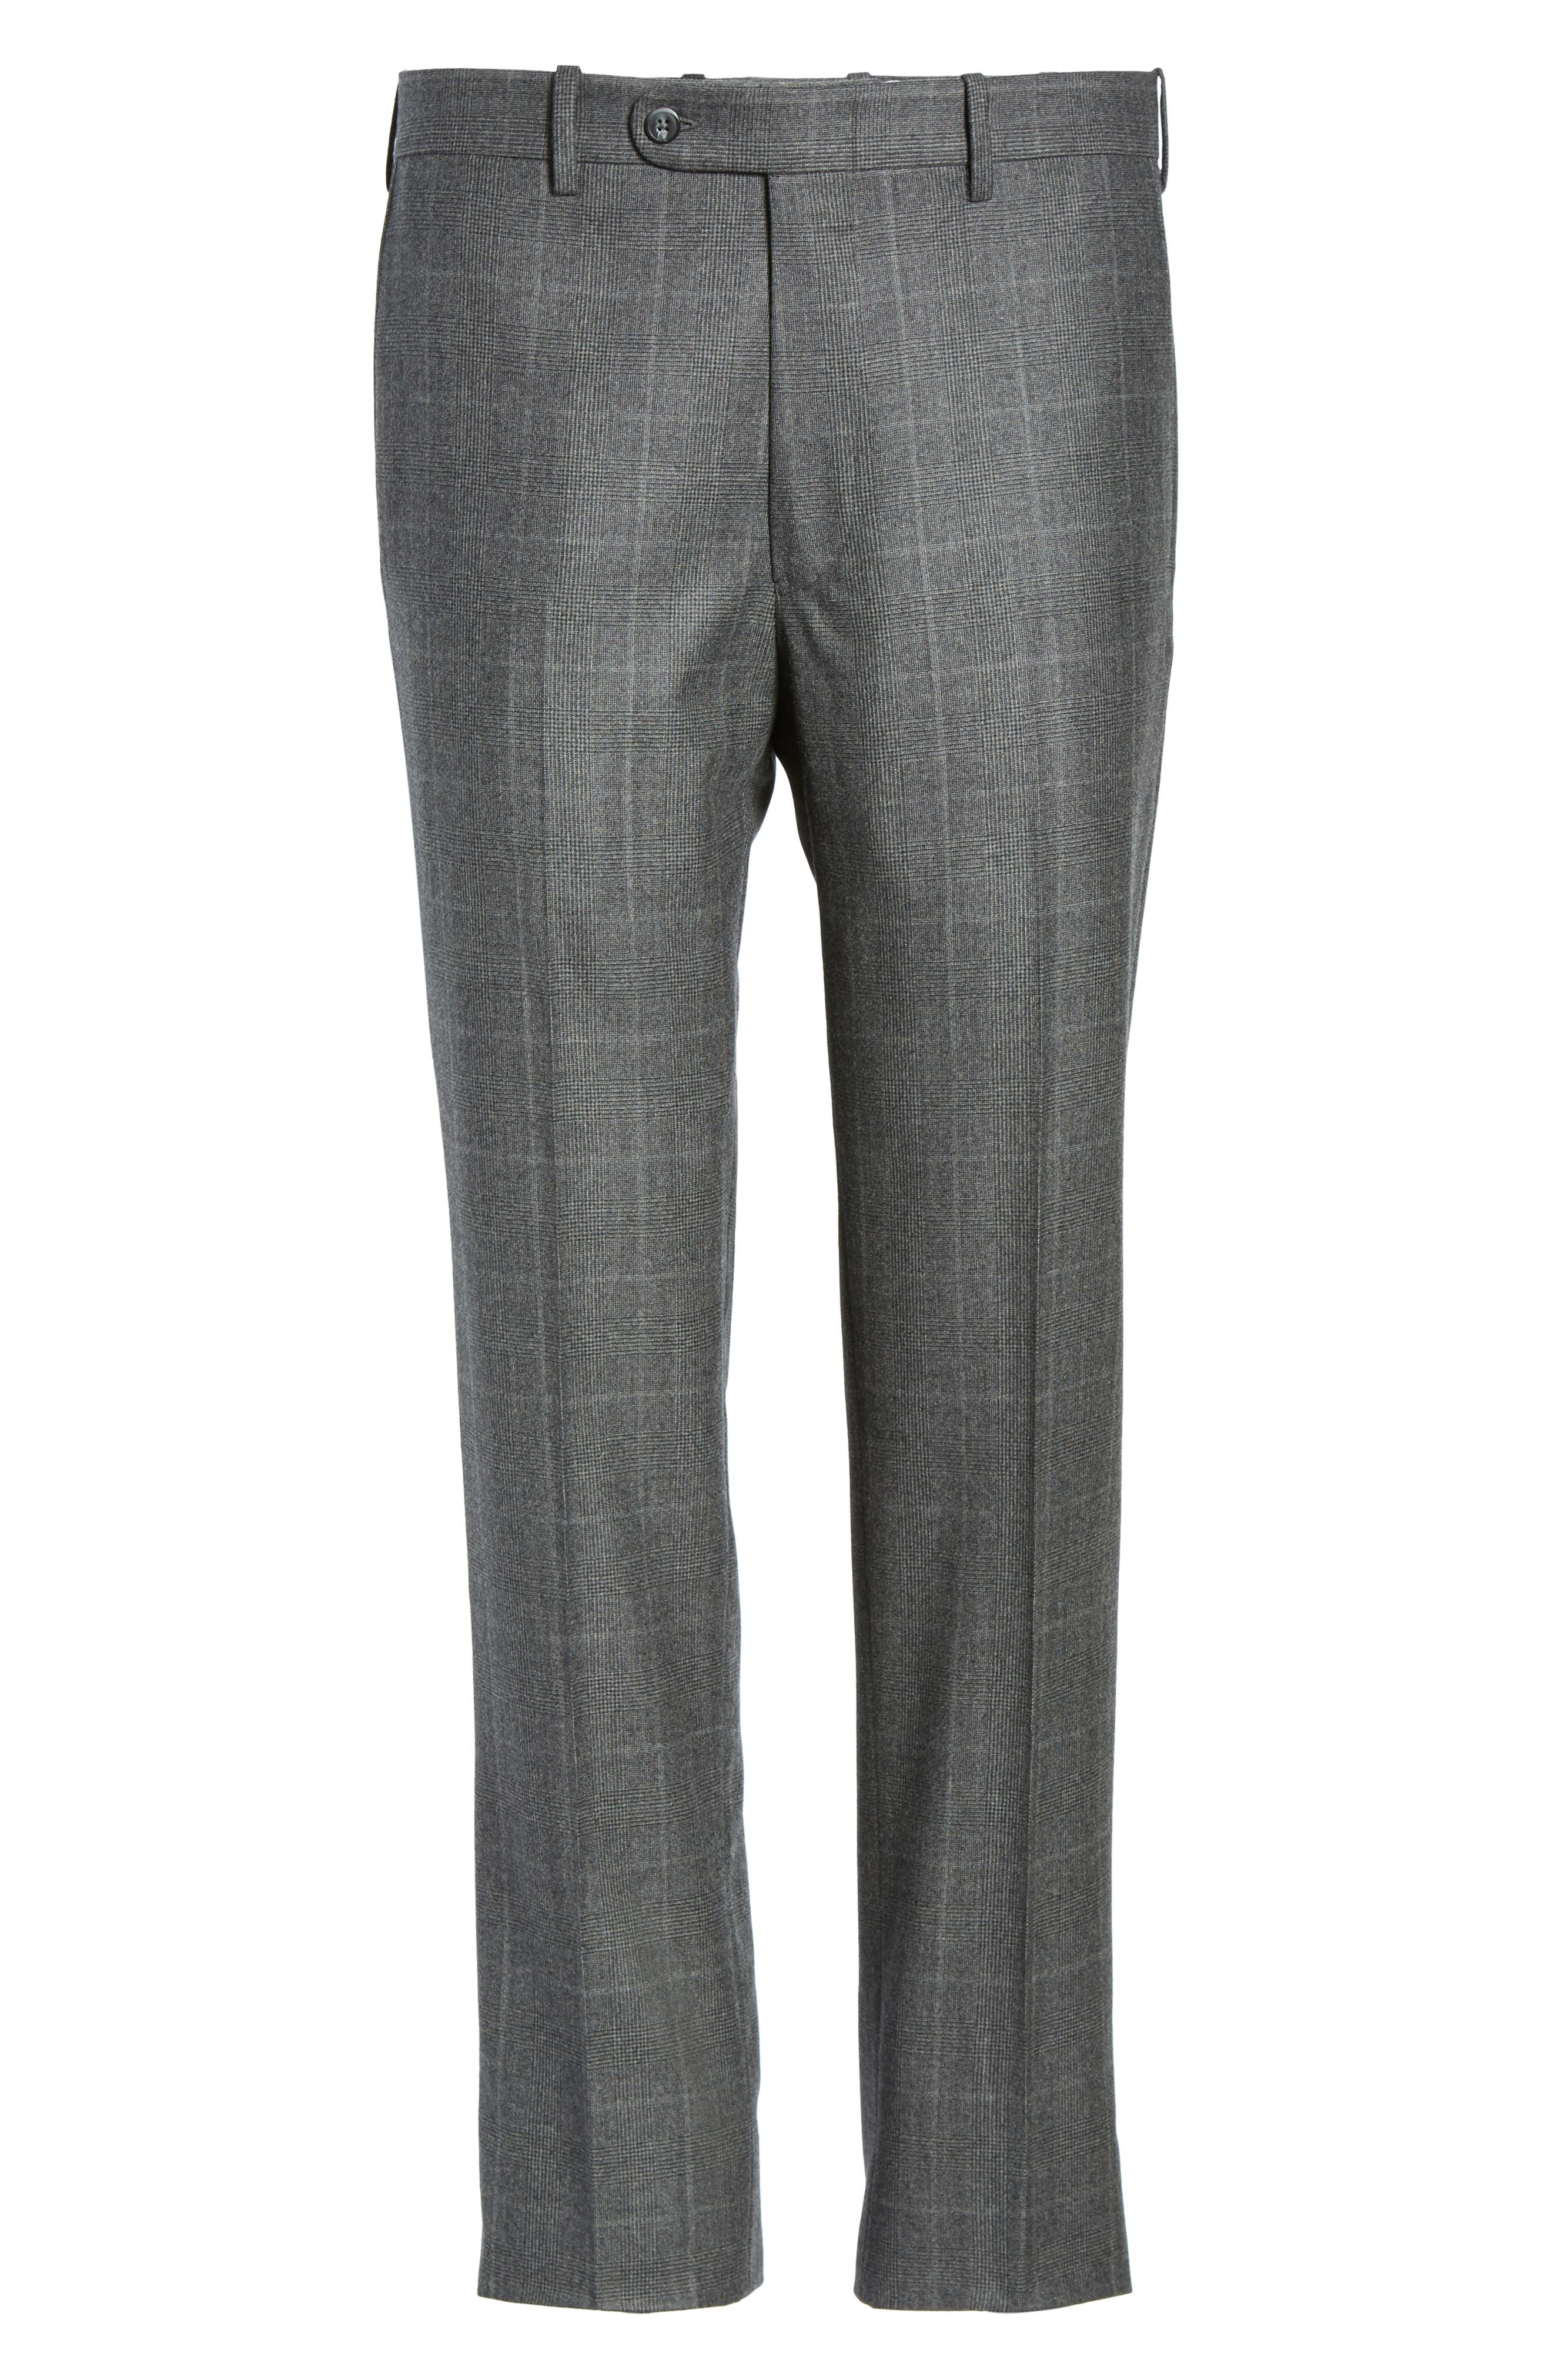 Flat Front Plaid Wool Trousers,                             Alternate thumbnail 6, color,                             032